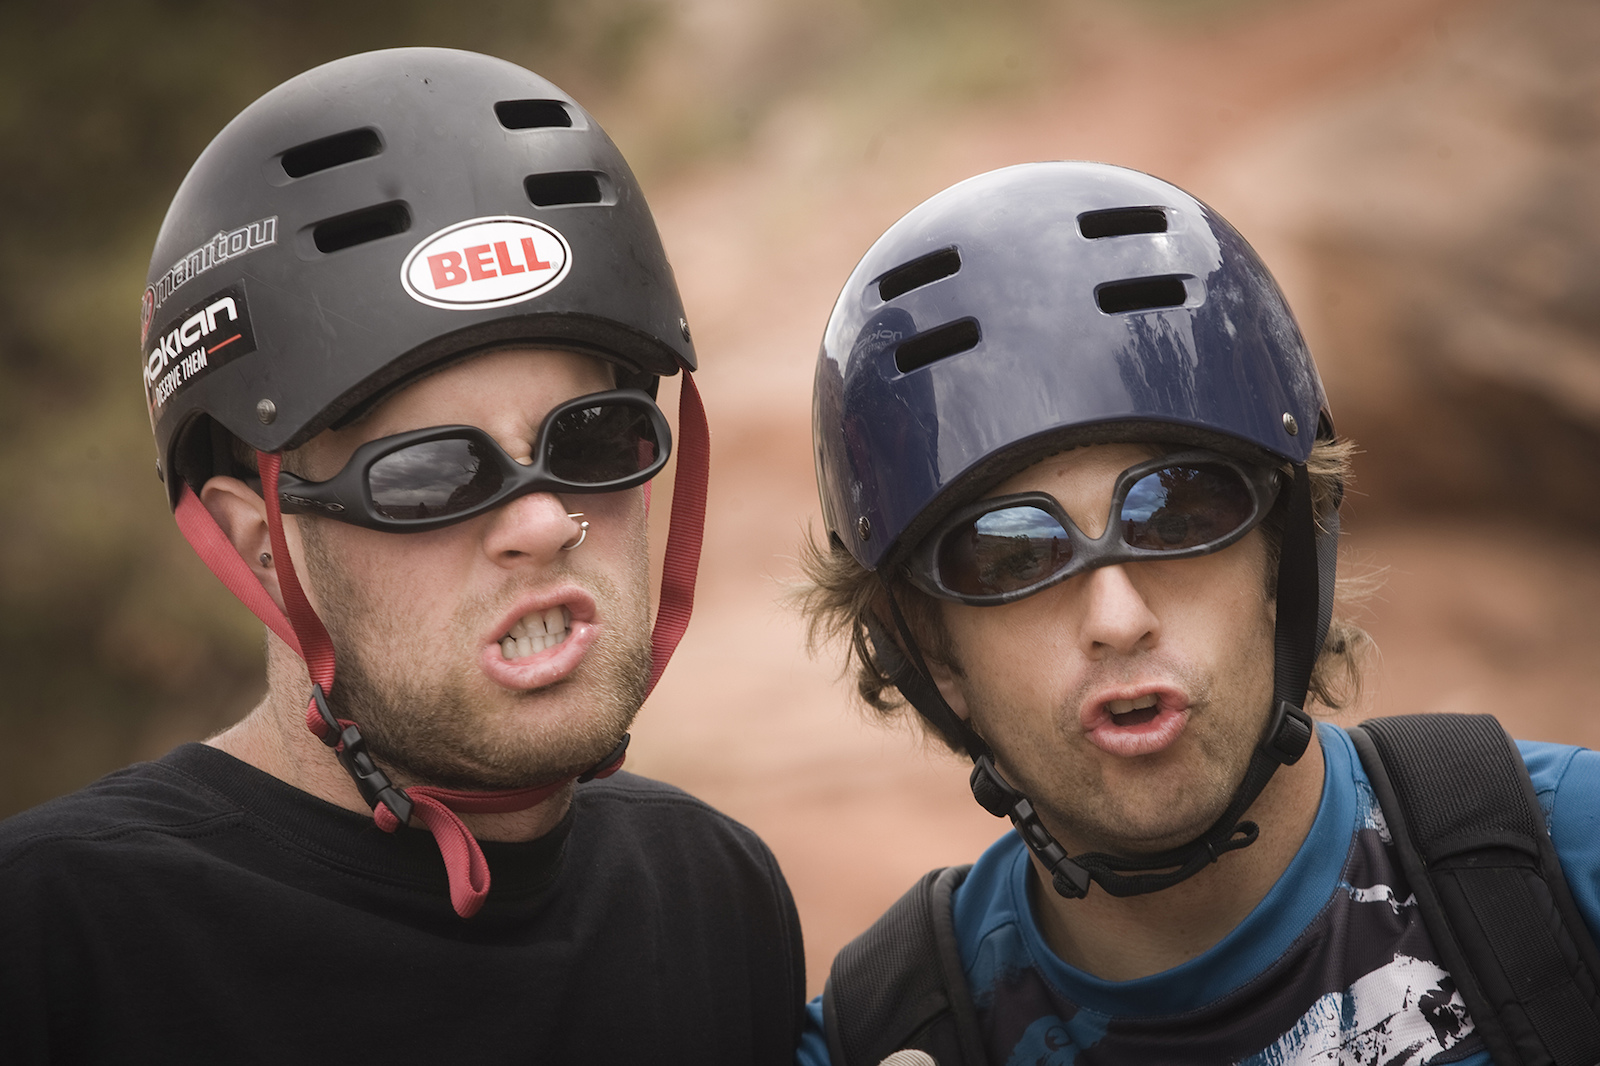 Jordie Lunn with Wade Simmons in Moab, Utah while filming for Roam in 2006